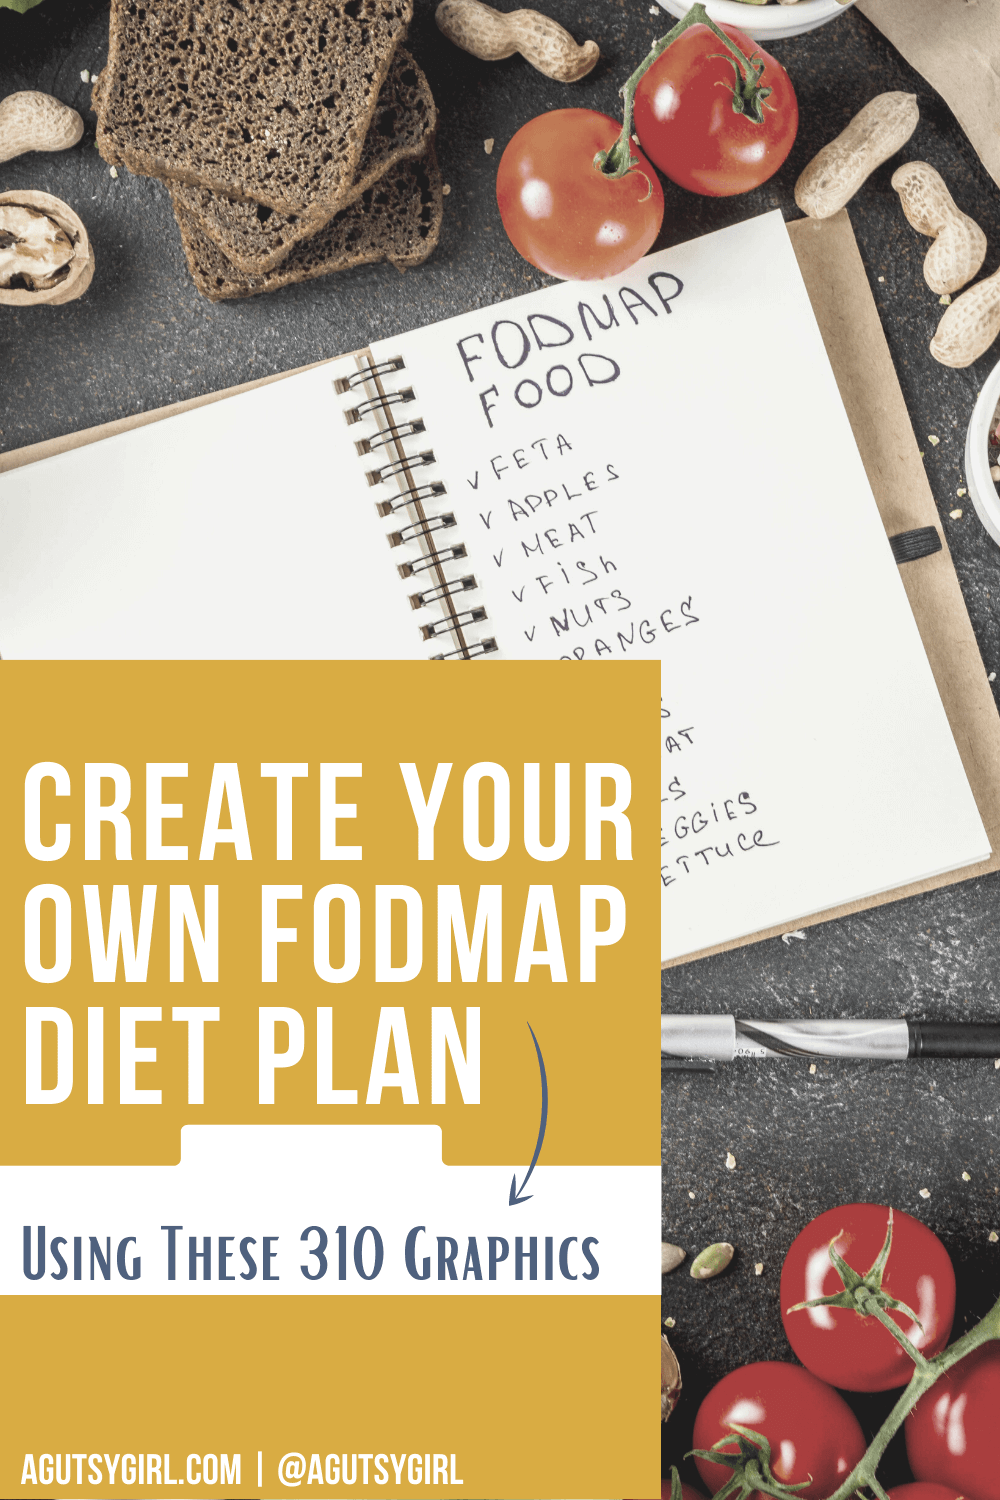 Create Your Own Fodmap Diet Plan Using These 310 Graphics A Gutsy Girl